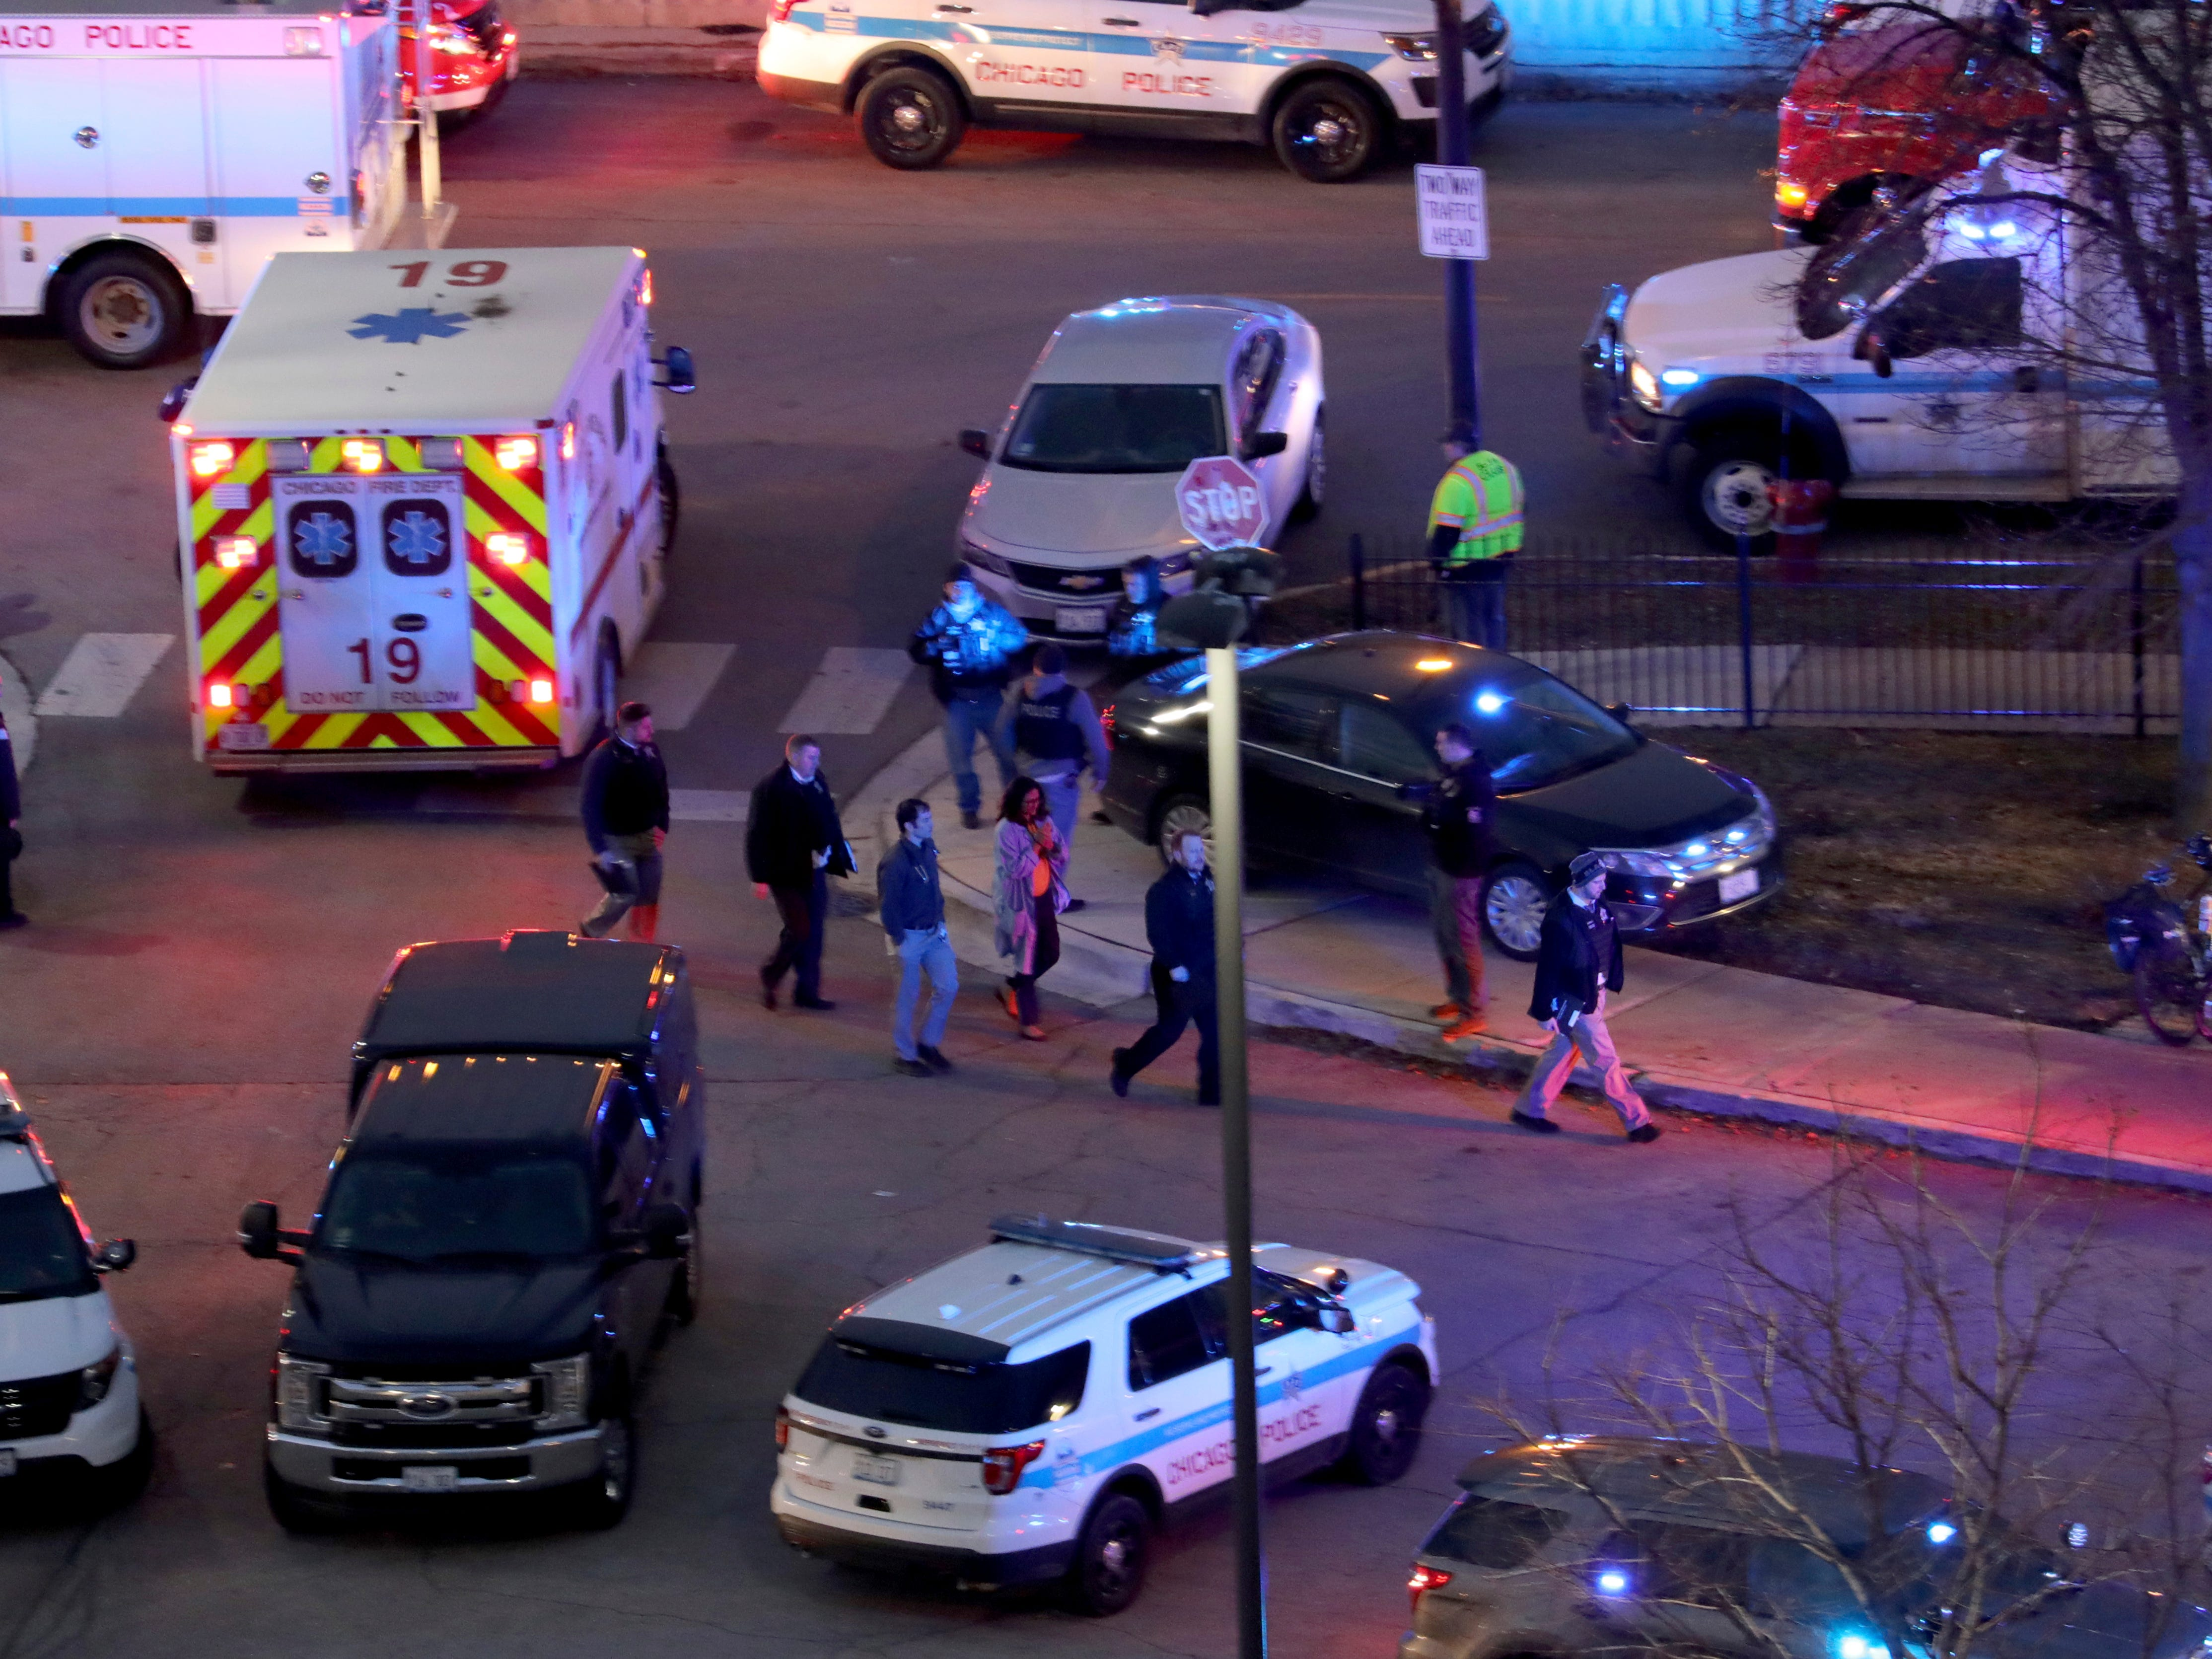 Law enforcement officials work near Mercy Hospital in Chicago on Nov. 19, 2018. A shooting at the Chicago hospital has wounded multiple people, including a suspect and a police officer, authorities said.